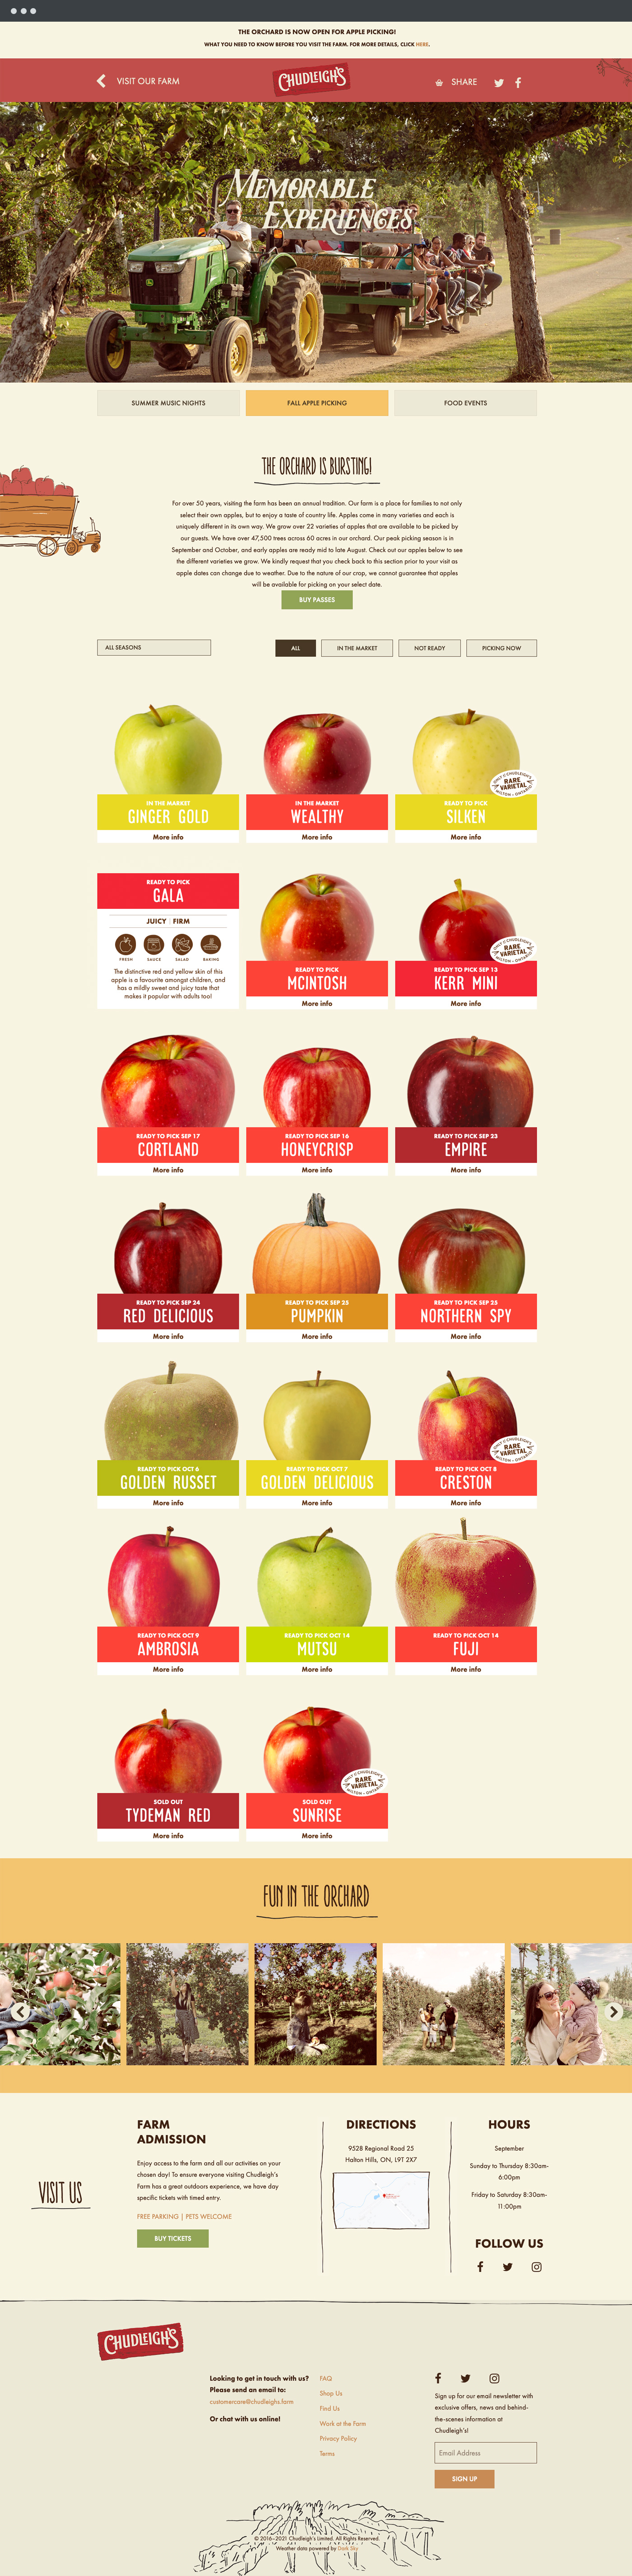 Chudleigh's apple page design